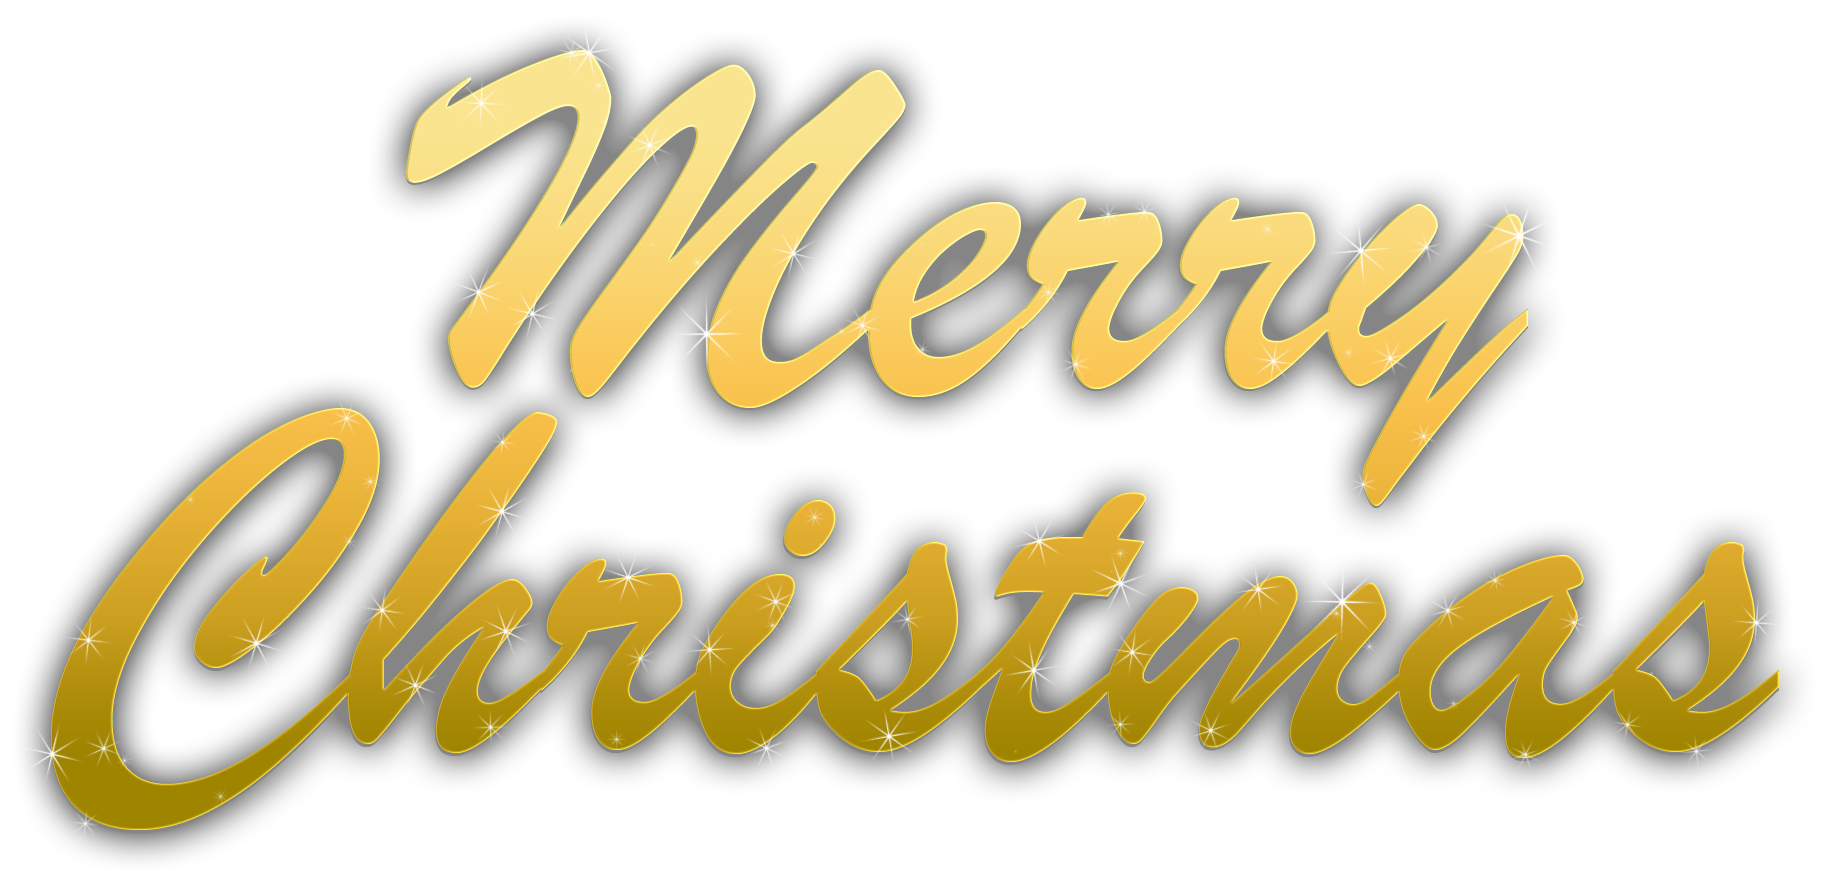 Merry christmas vintage text png. Transparent pictures free icons